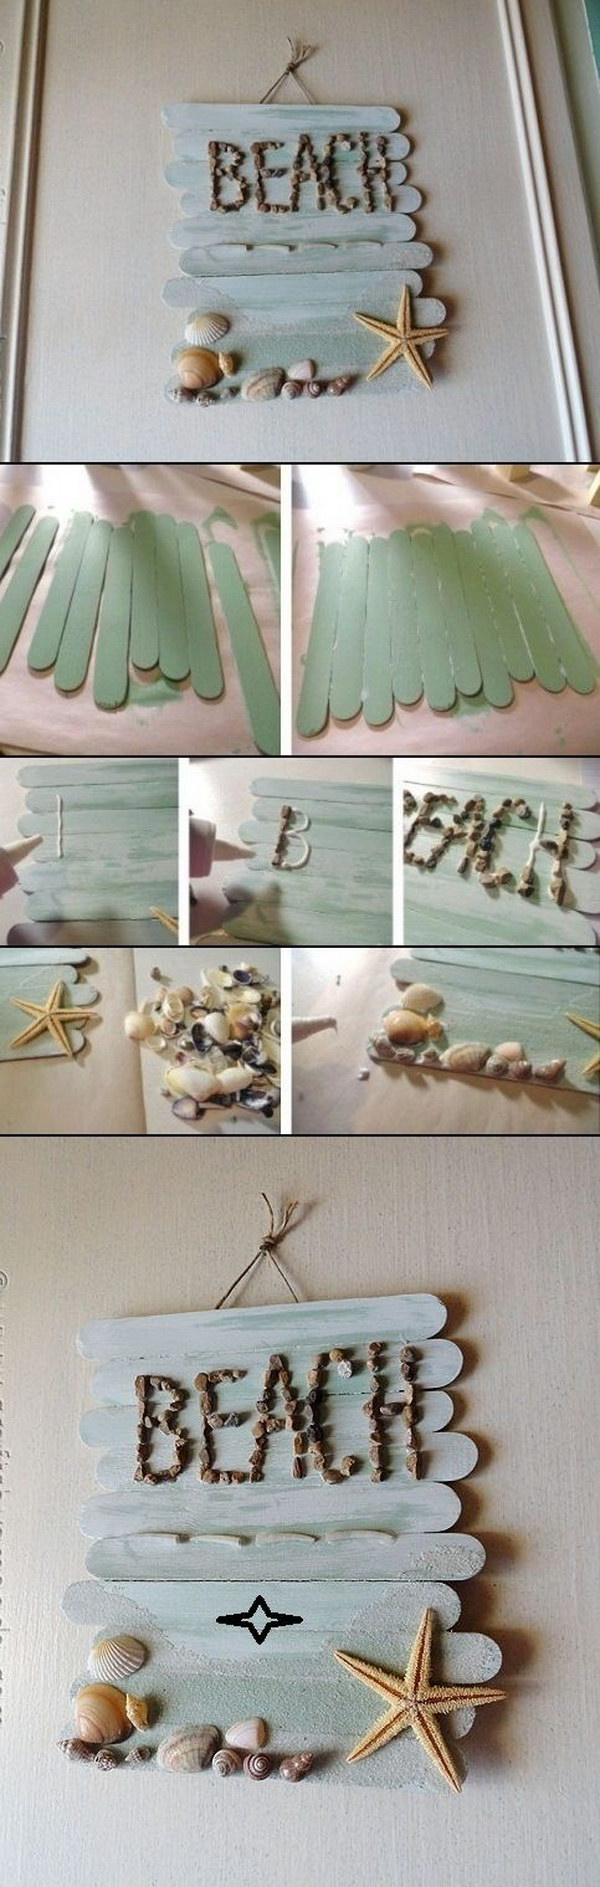 DIY Craft Stick Wall Art